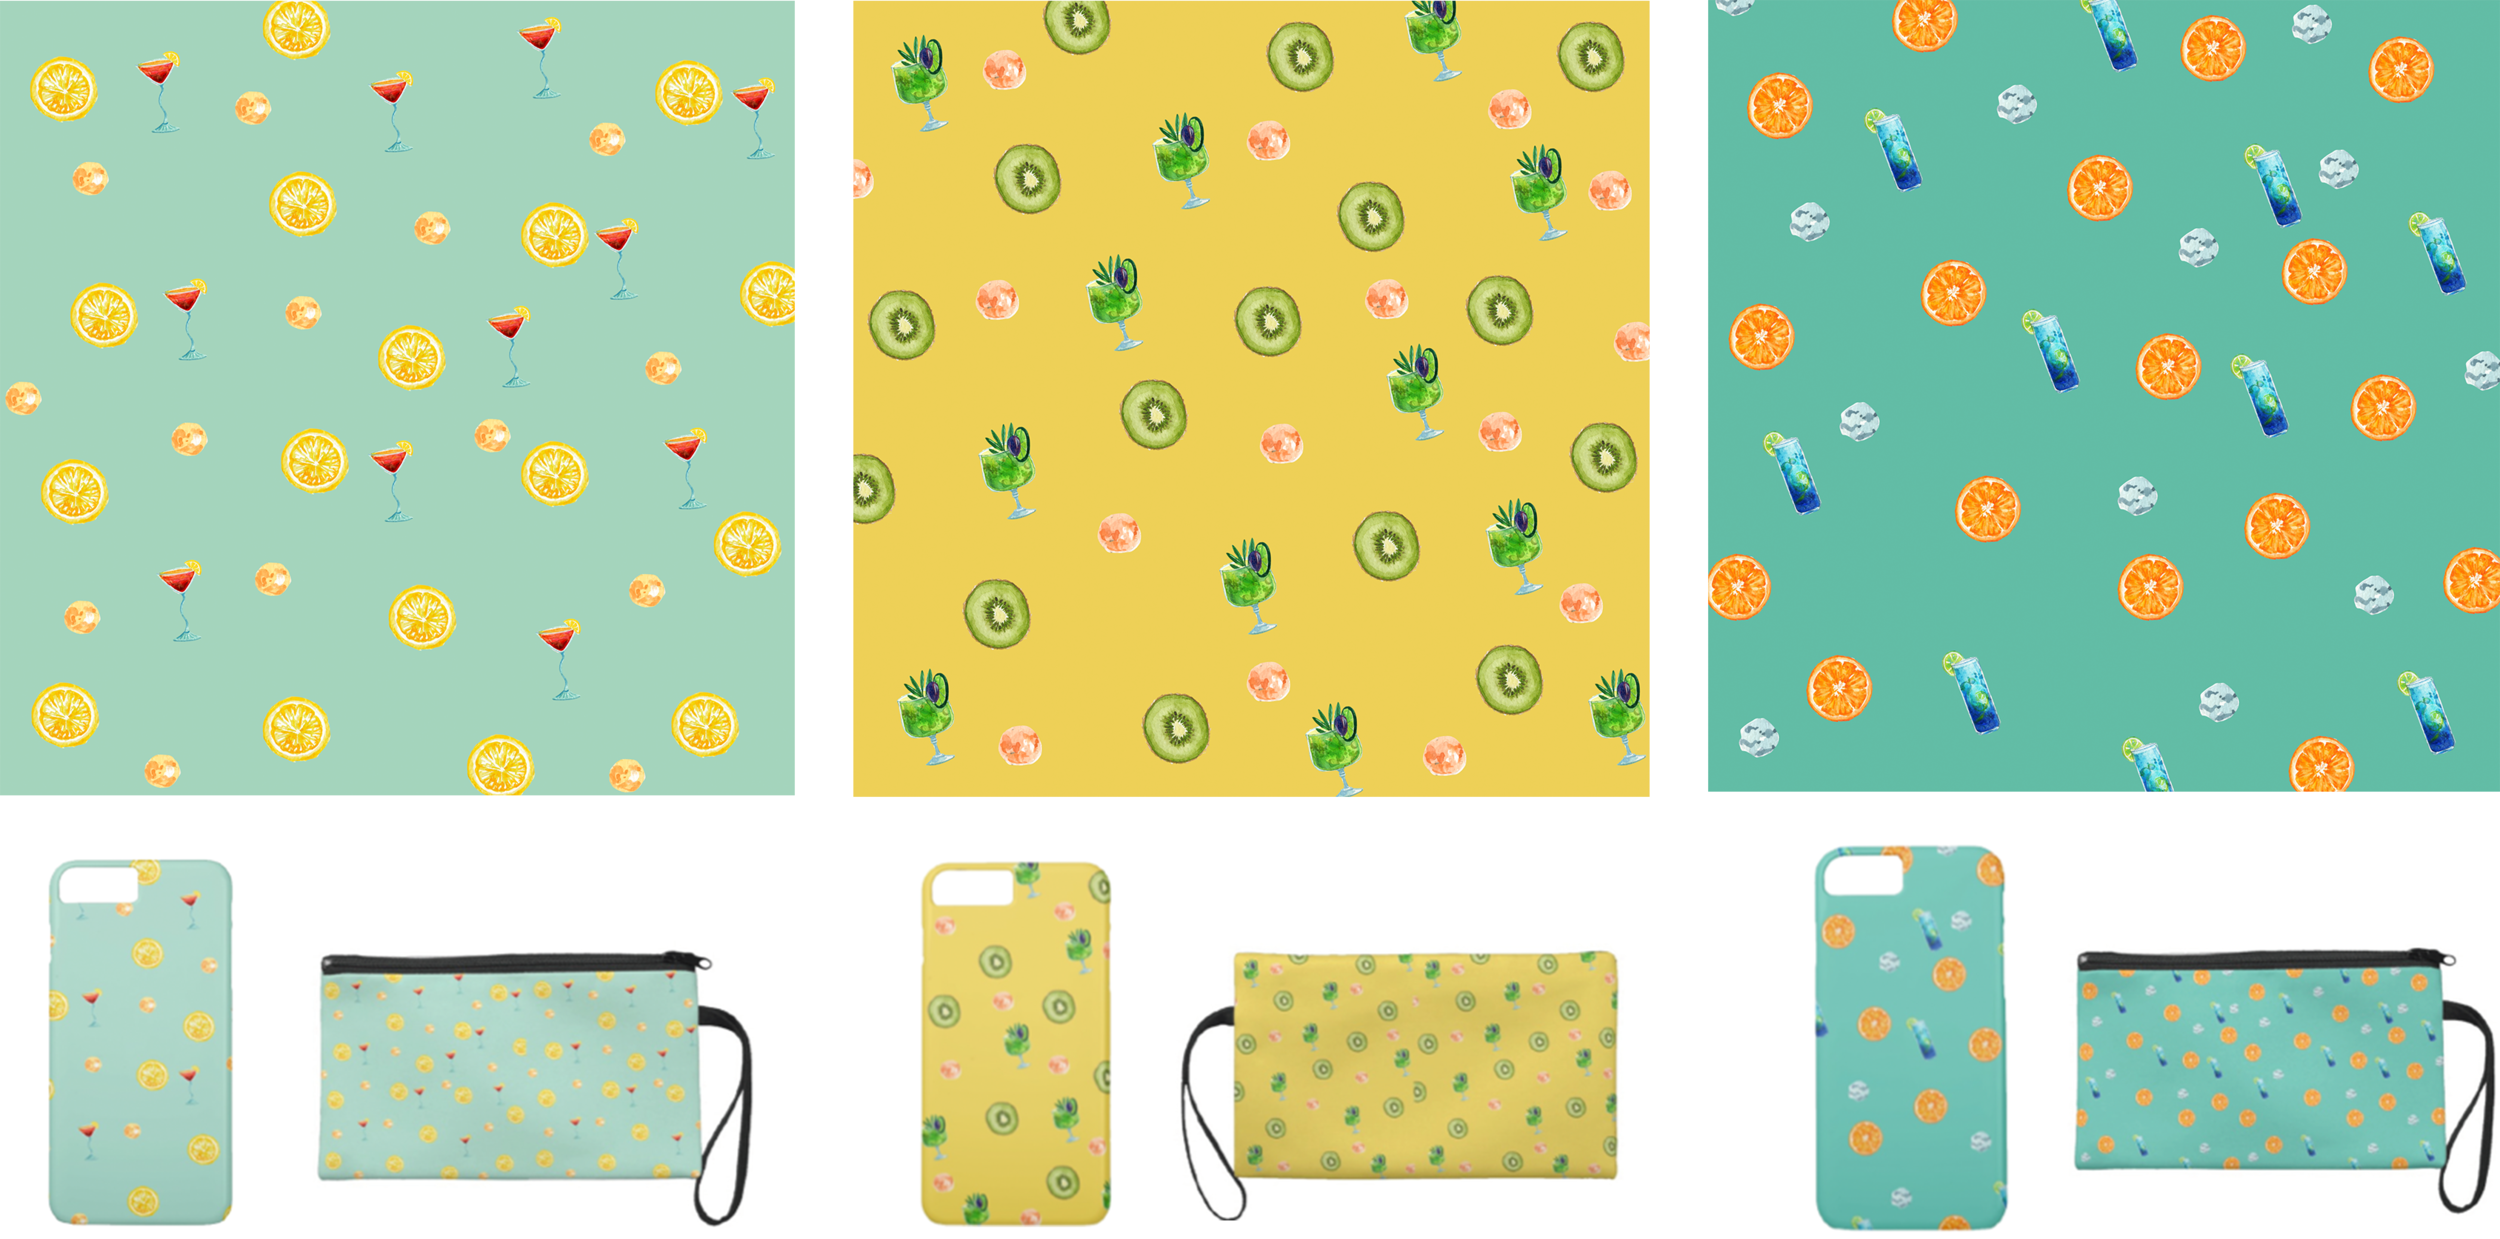 Pattern Design - • Goal: Pattern design and their real-life application• Outcome: A set of three different pattern designs with a consistent fruit and cocktail style, demonstrated on phone case and a wrist wallet